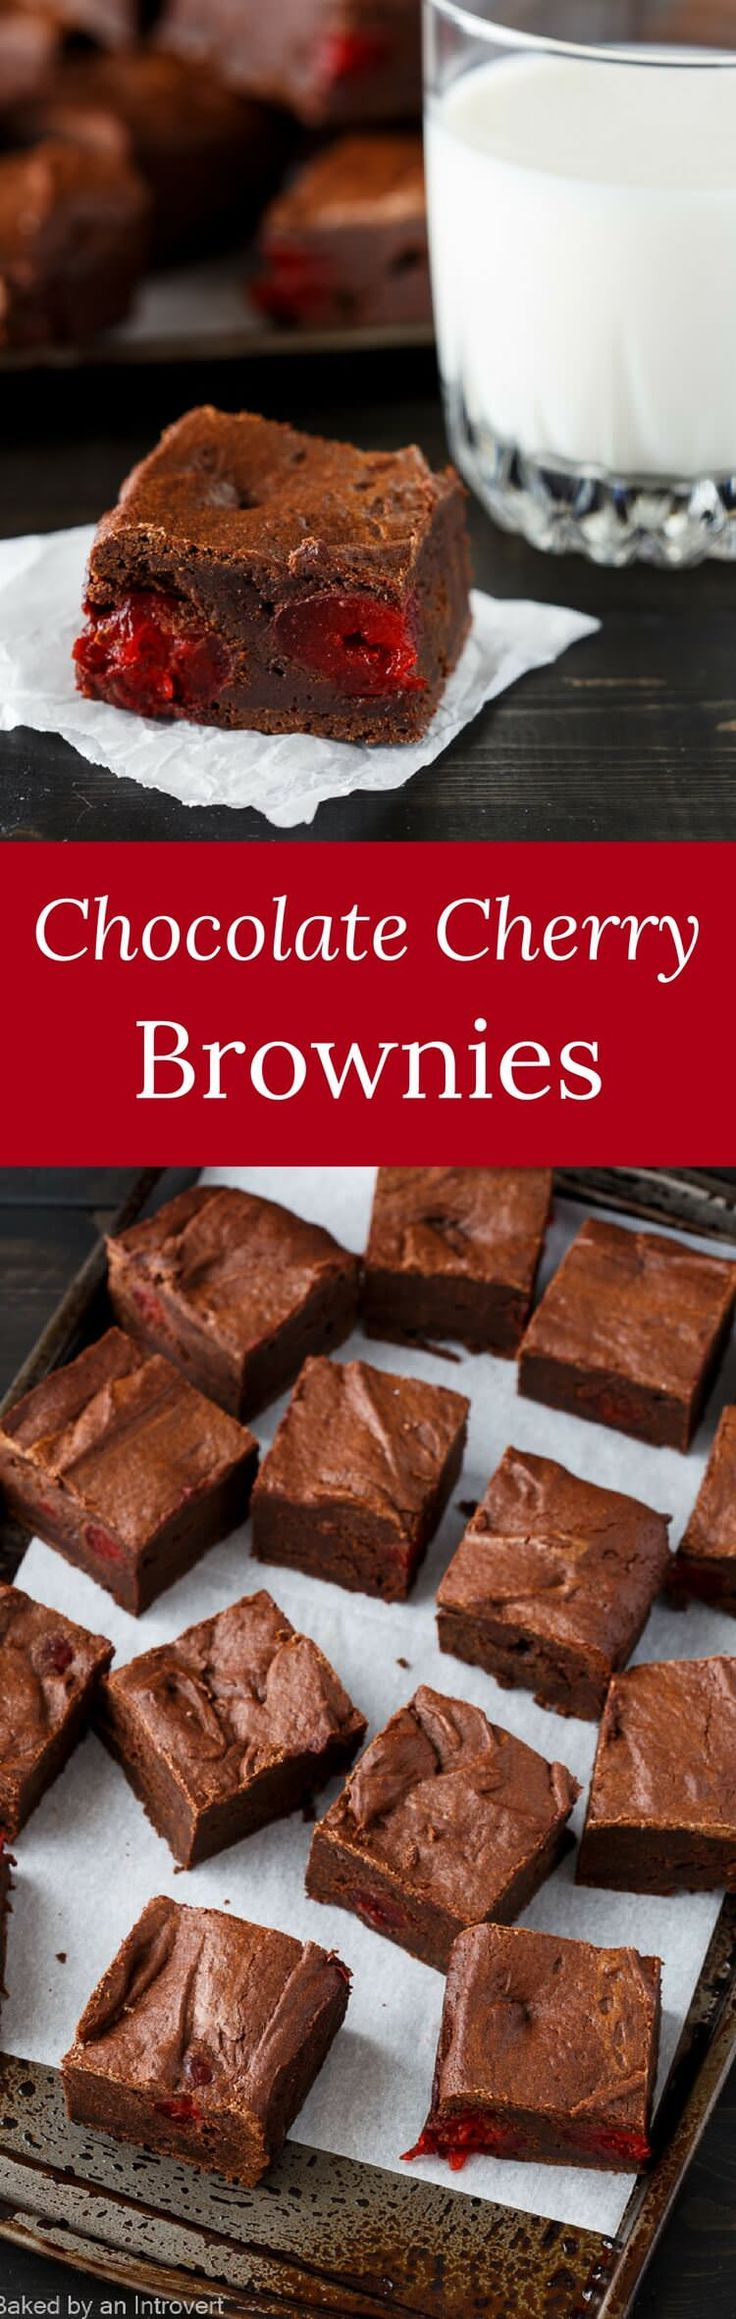 Best 20+ Cherry brownies ideas on Pinterest | Cherry desserts ...